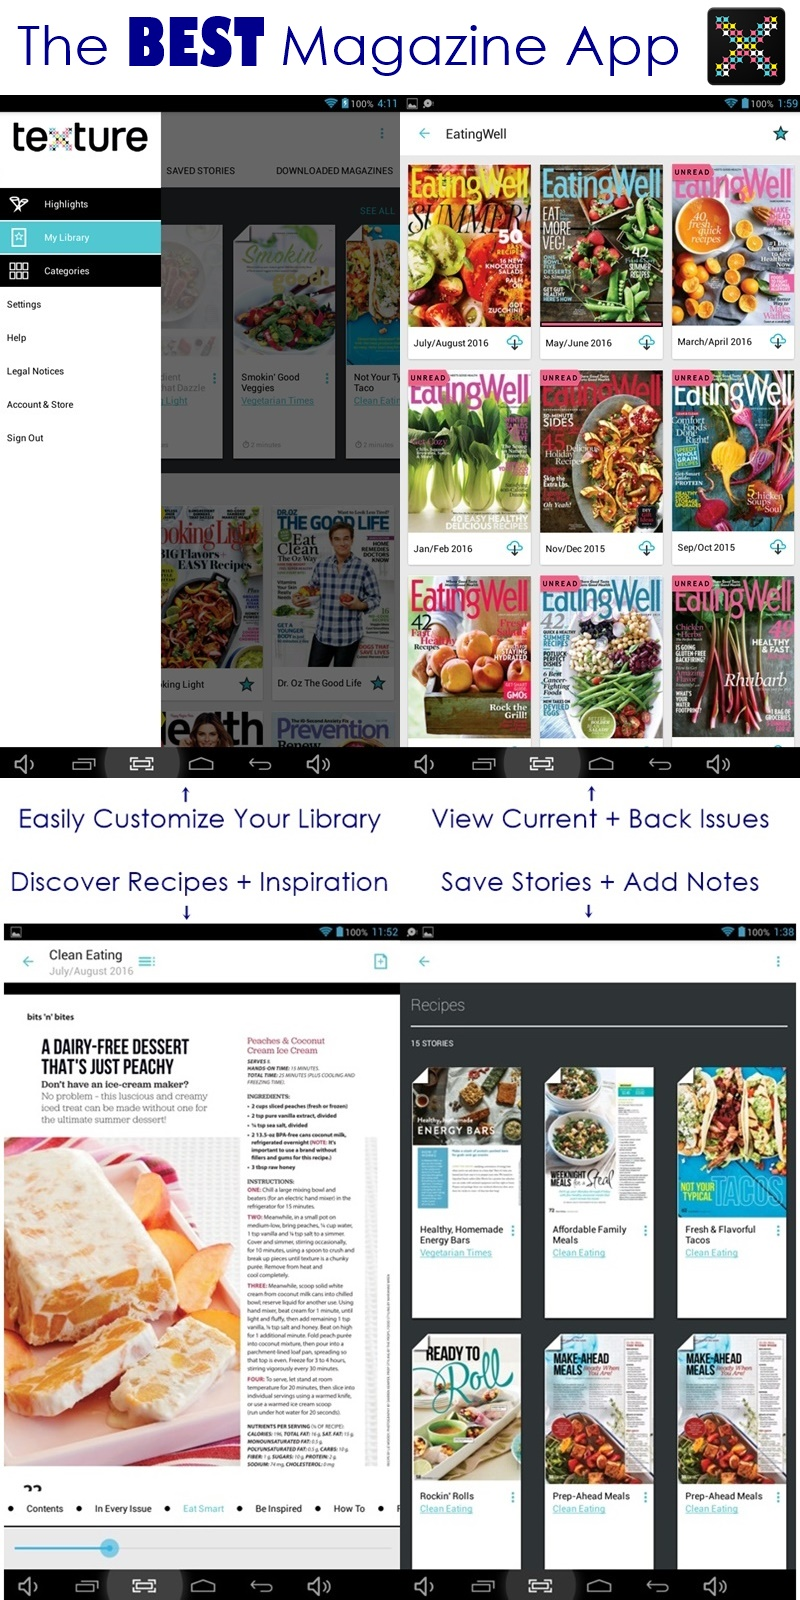 Texture App - Over 175 Magazines (with Back Issues!) at your finger tips (awesome for finding & sorting recipes!)